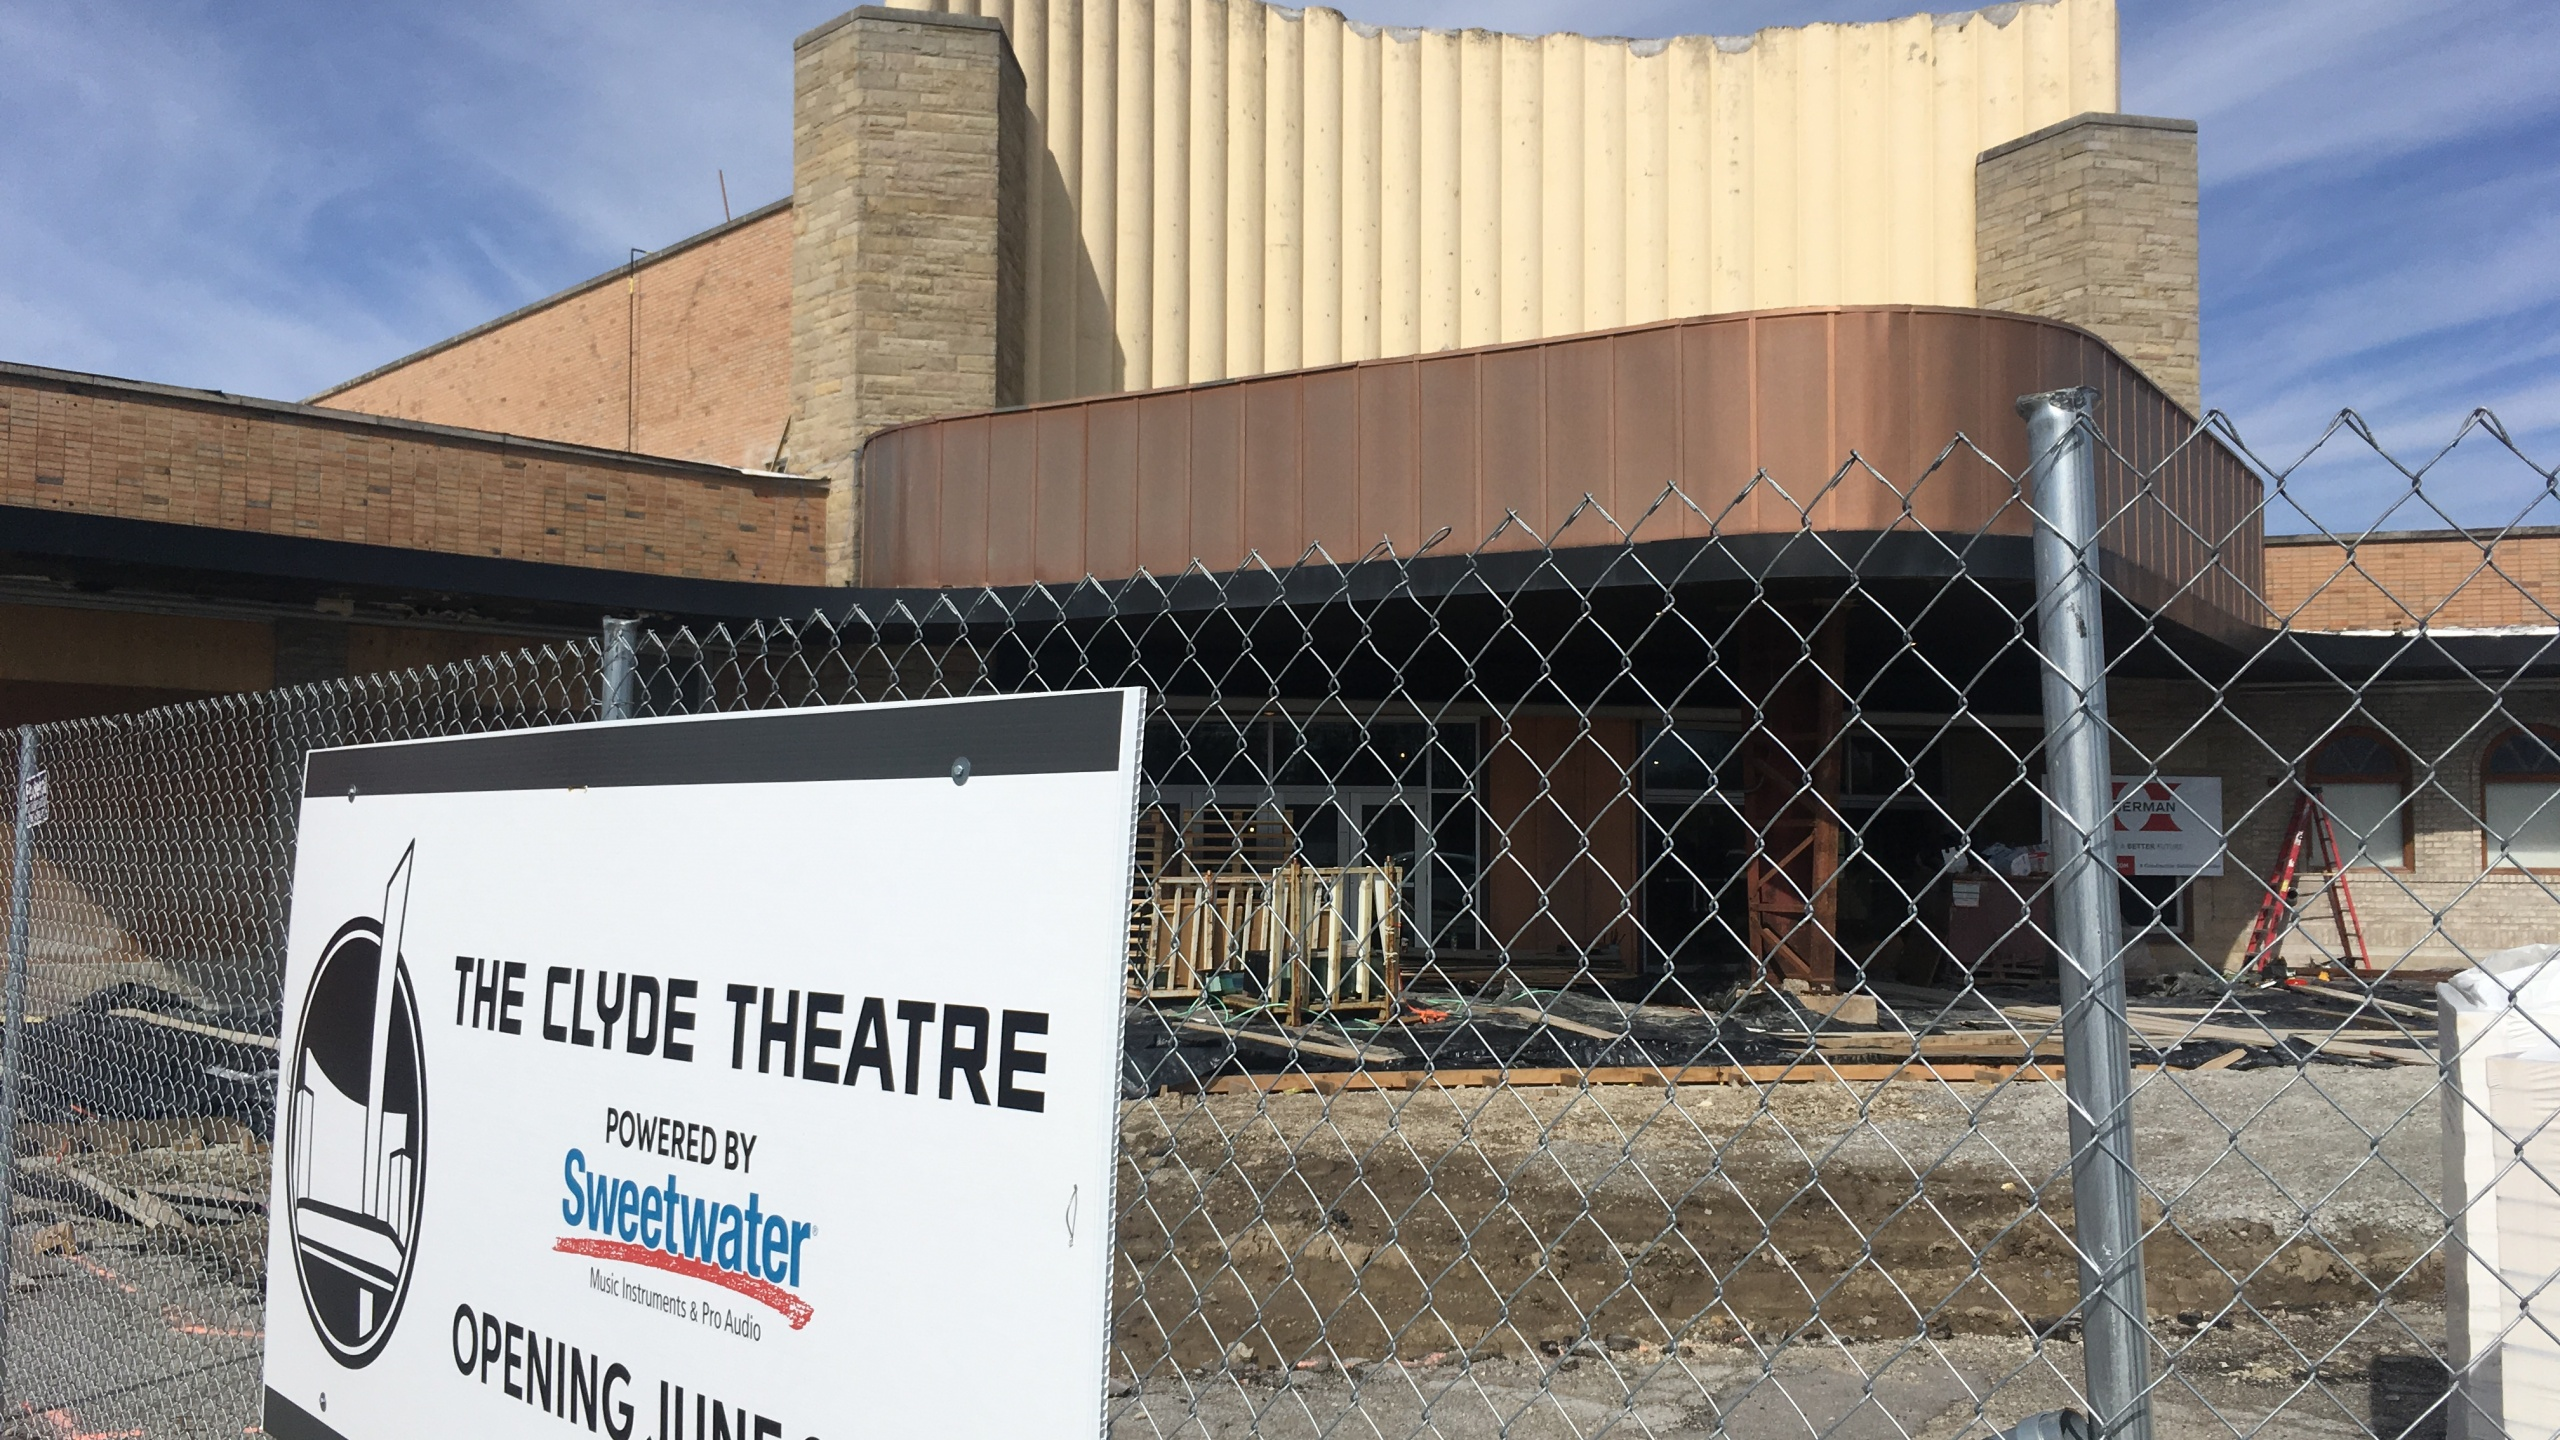 Clyde Theater_317803